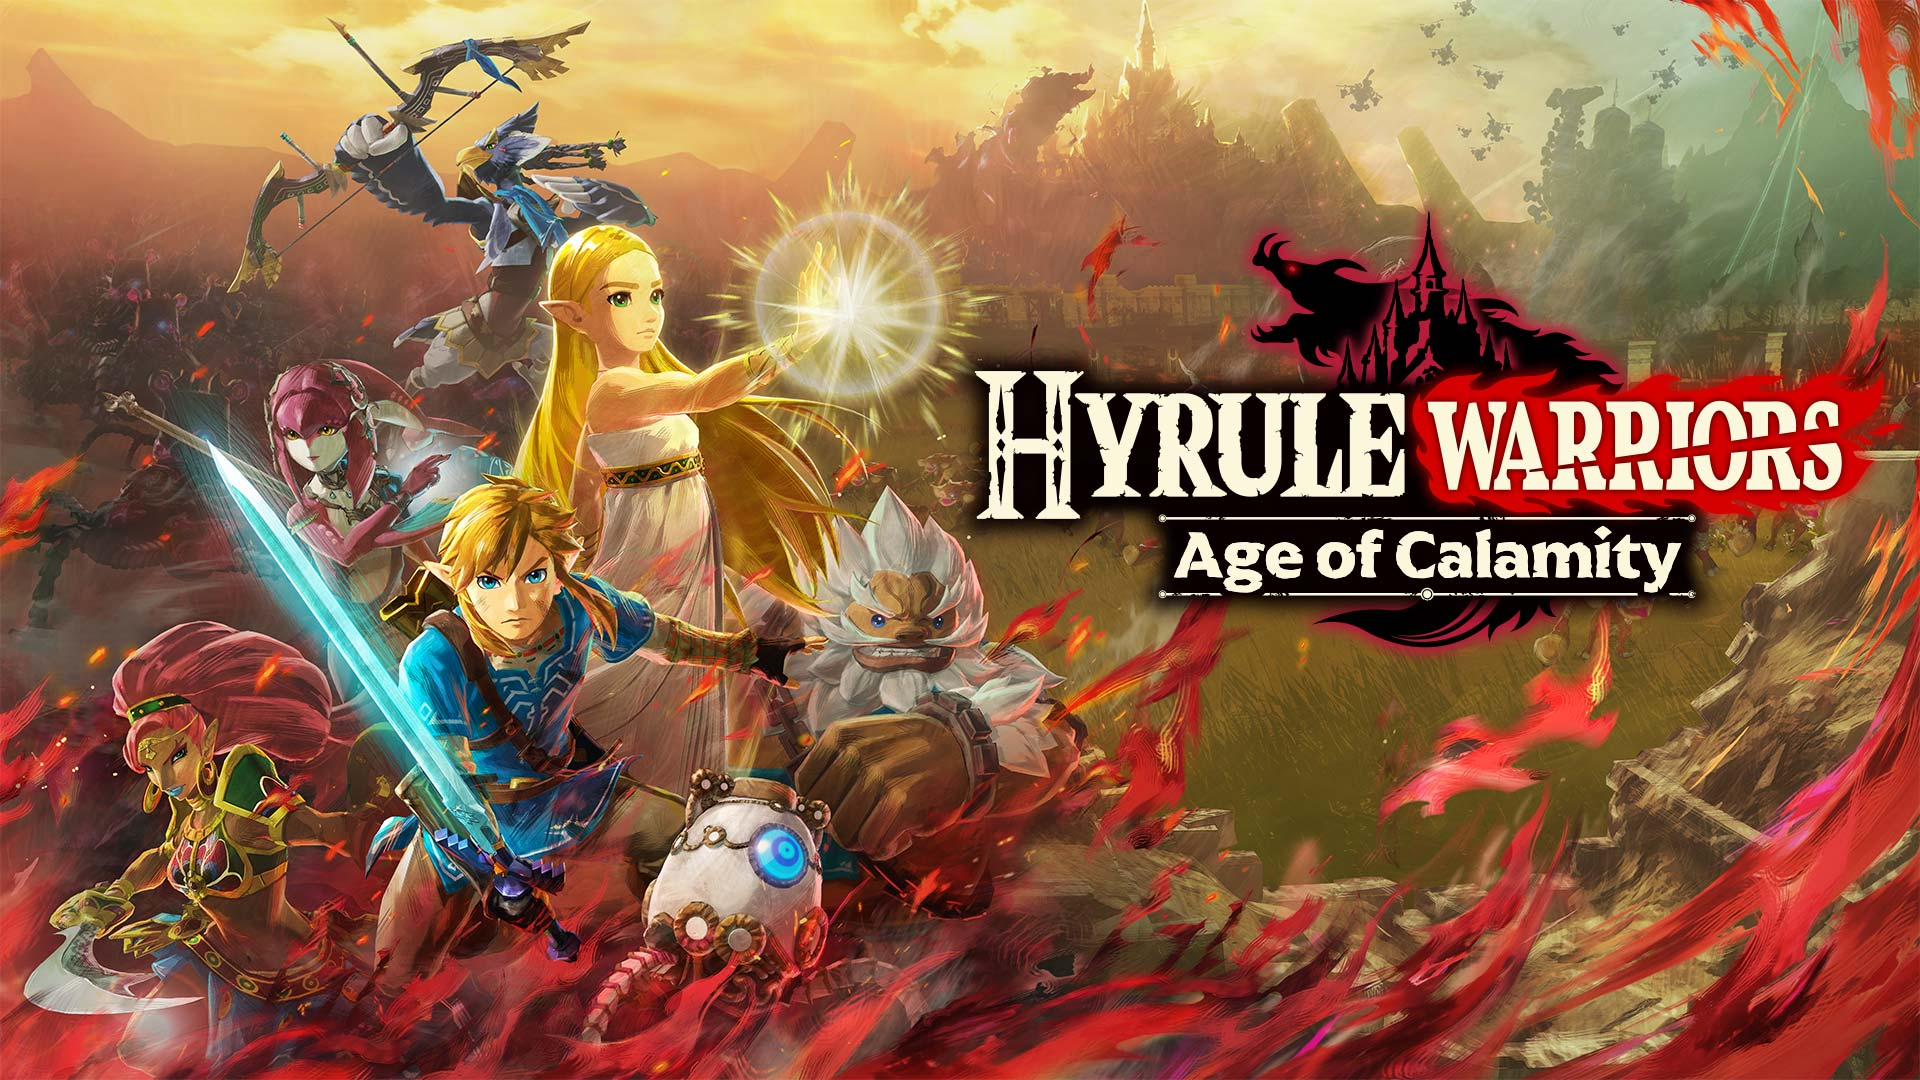 Hyrule Warrior: Age Of Calamity